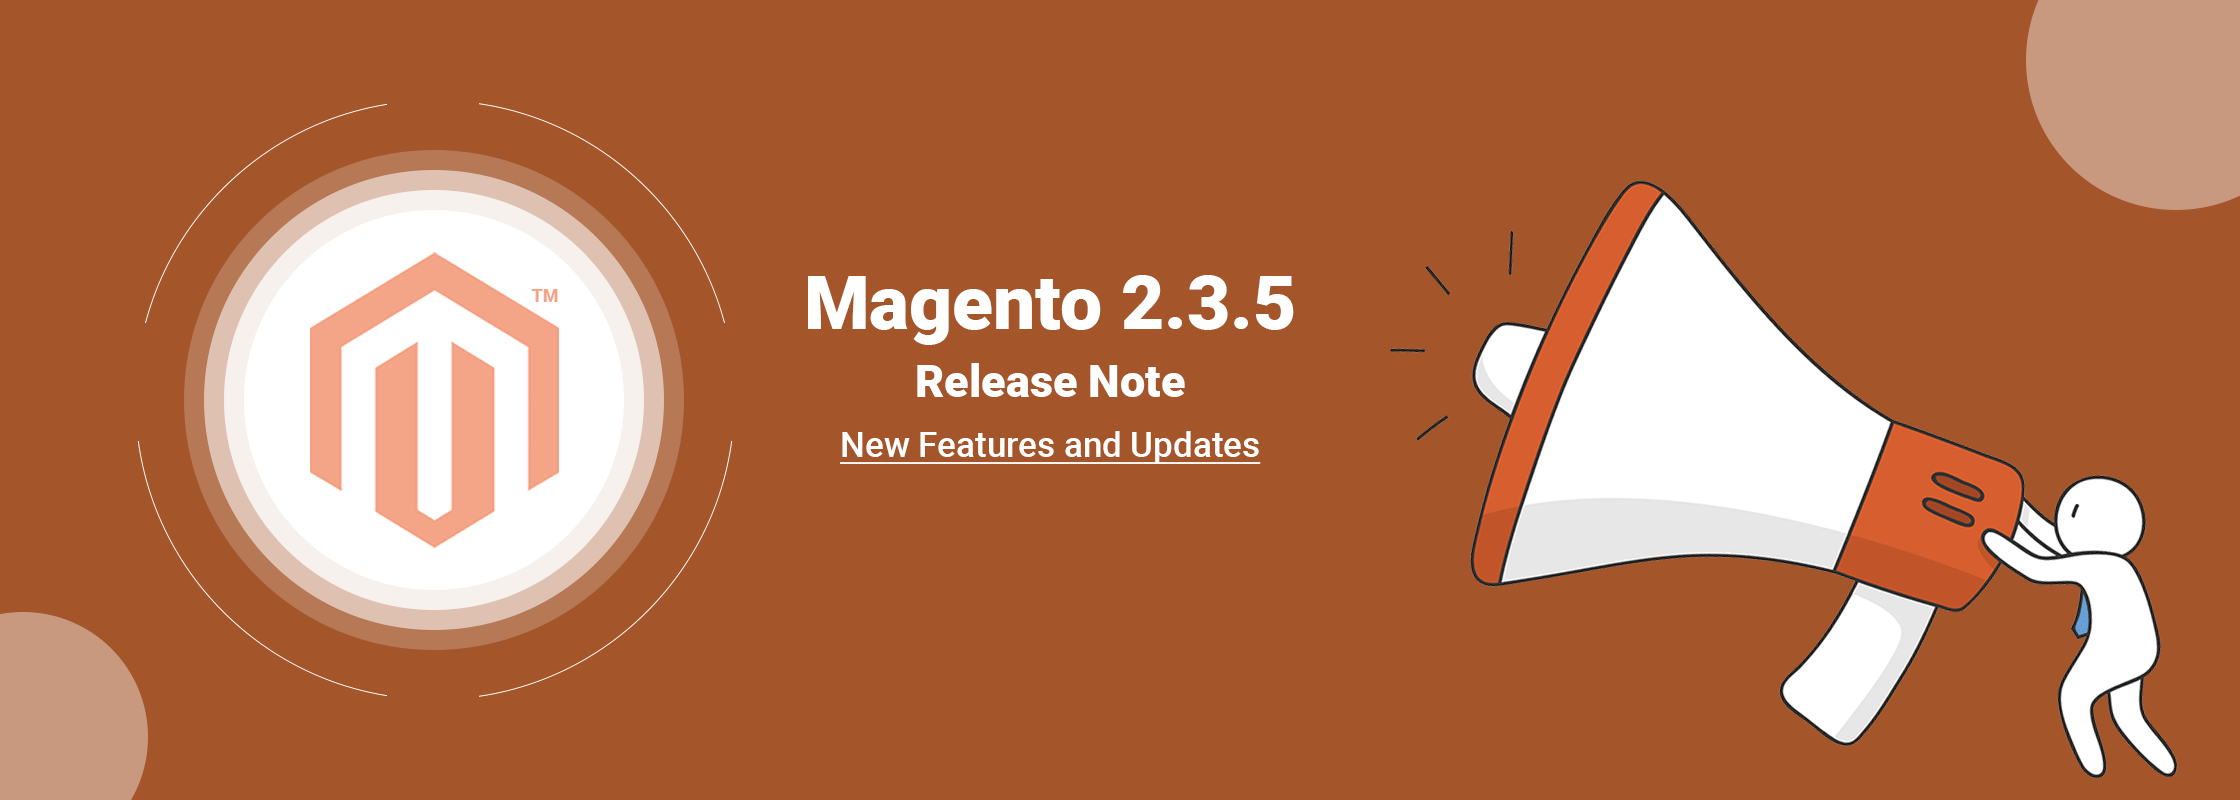 All You Need To Know About Magento Commerce 2.3.5 Release